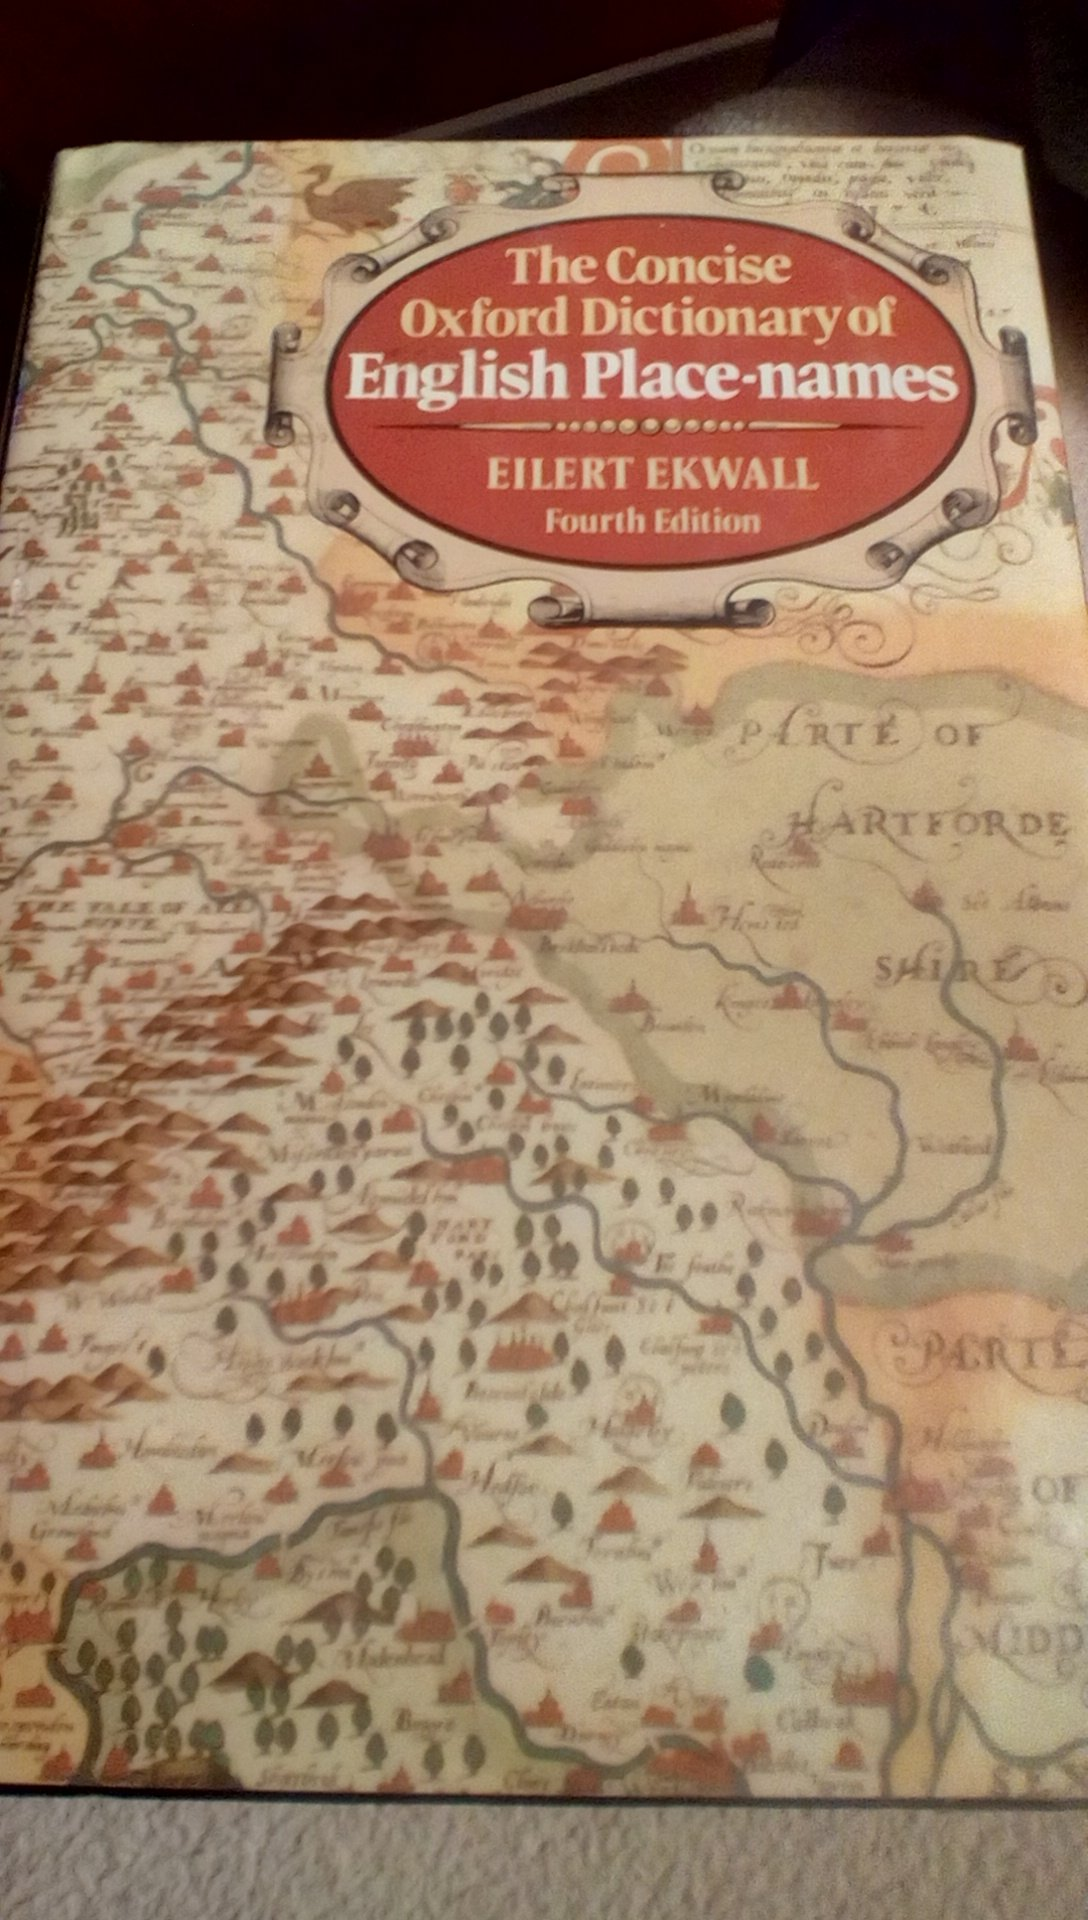 The Concise Oxford Dictionary of English Place-Names: Eilert Ekwall:  9780198691037: Amazon.com: Books